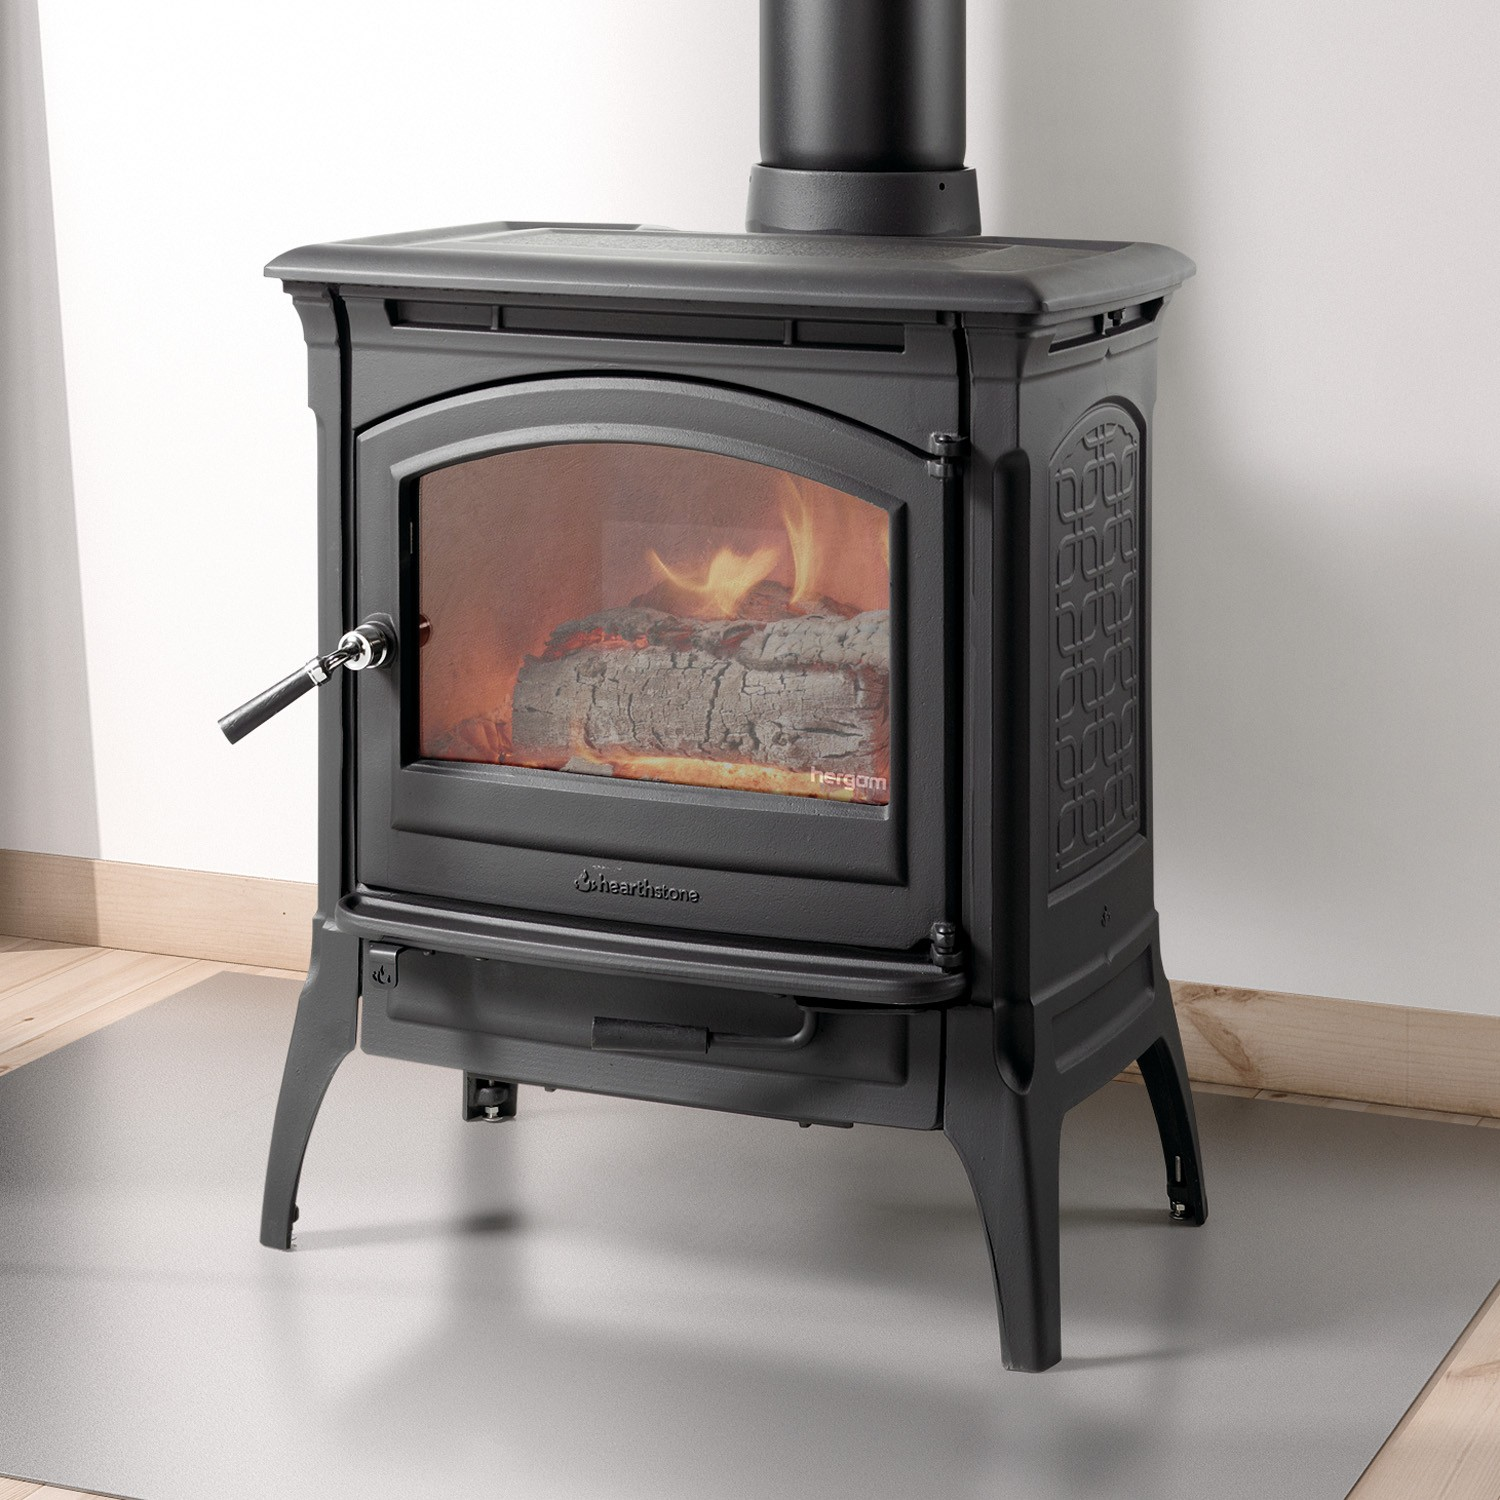 The Hearthstone Craftsbury wood stove is the newest product from the cast-iron line at Hearthstone.   Smaller size competes with other popular brands at an unusually low price.